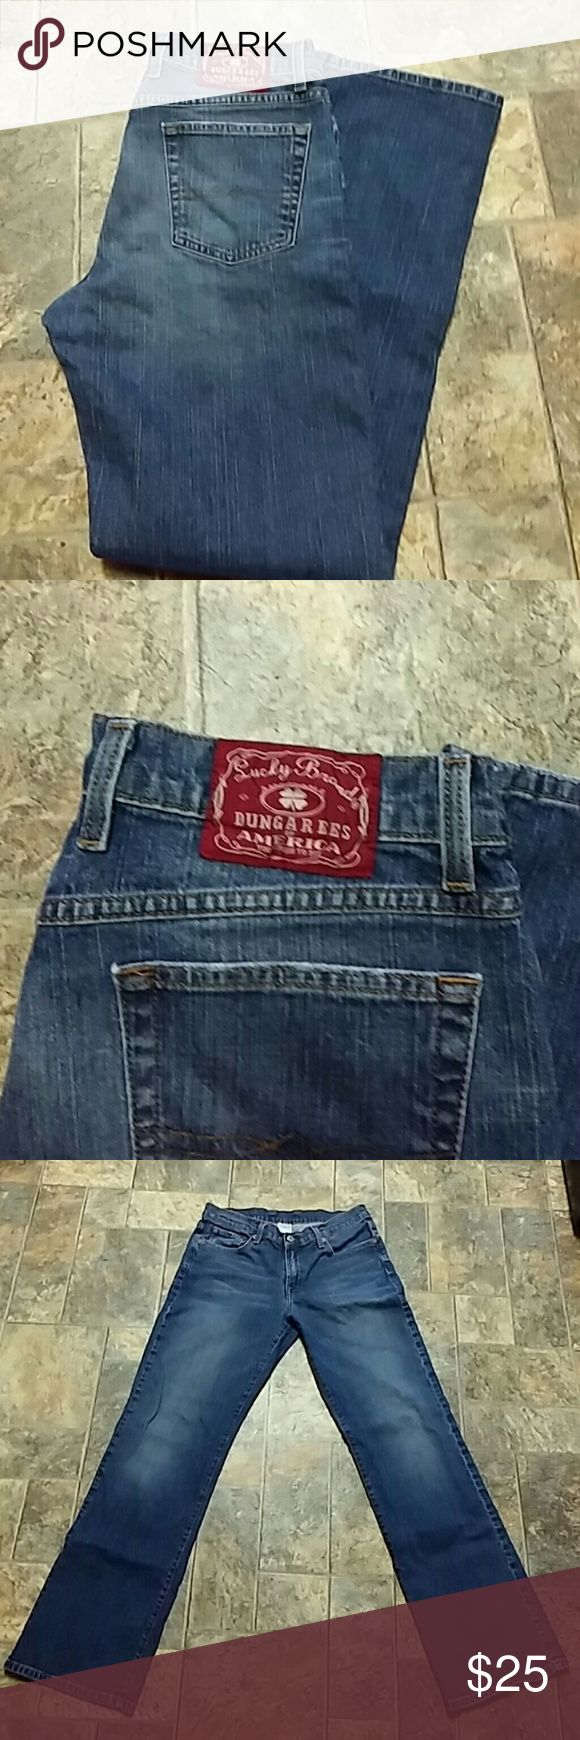 Lucky Brand Dungarees jeans size 12/31 Lucky Brand Dungarees jeans size 12/31, inseam 31 Lucky Brand Jeans Boot Cut